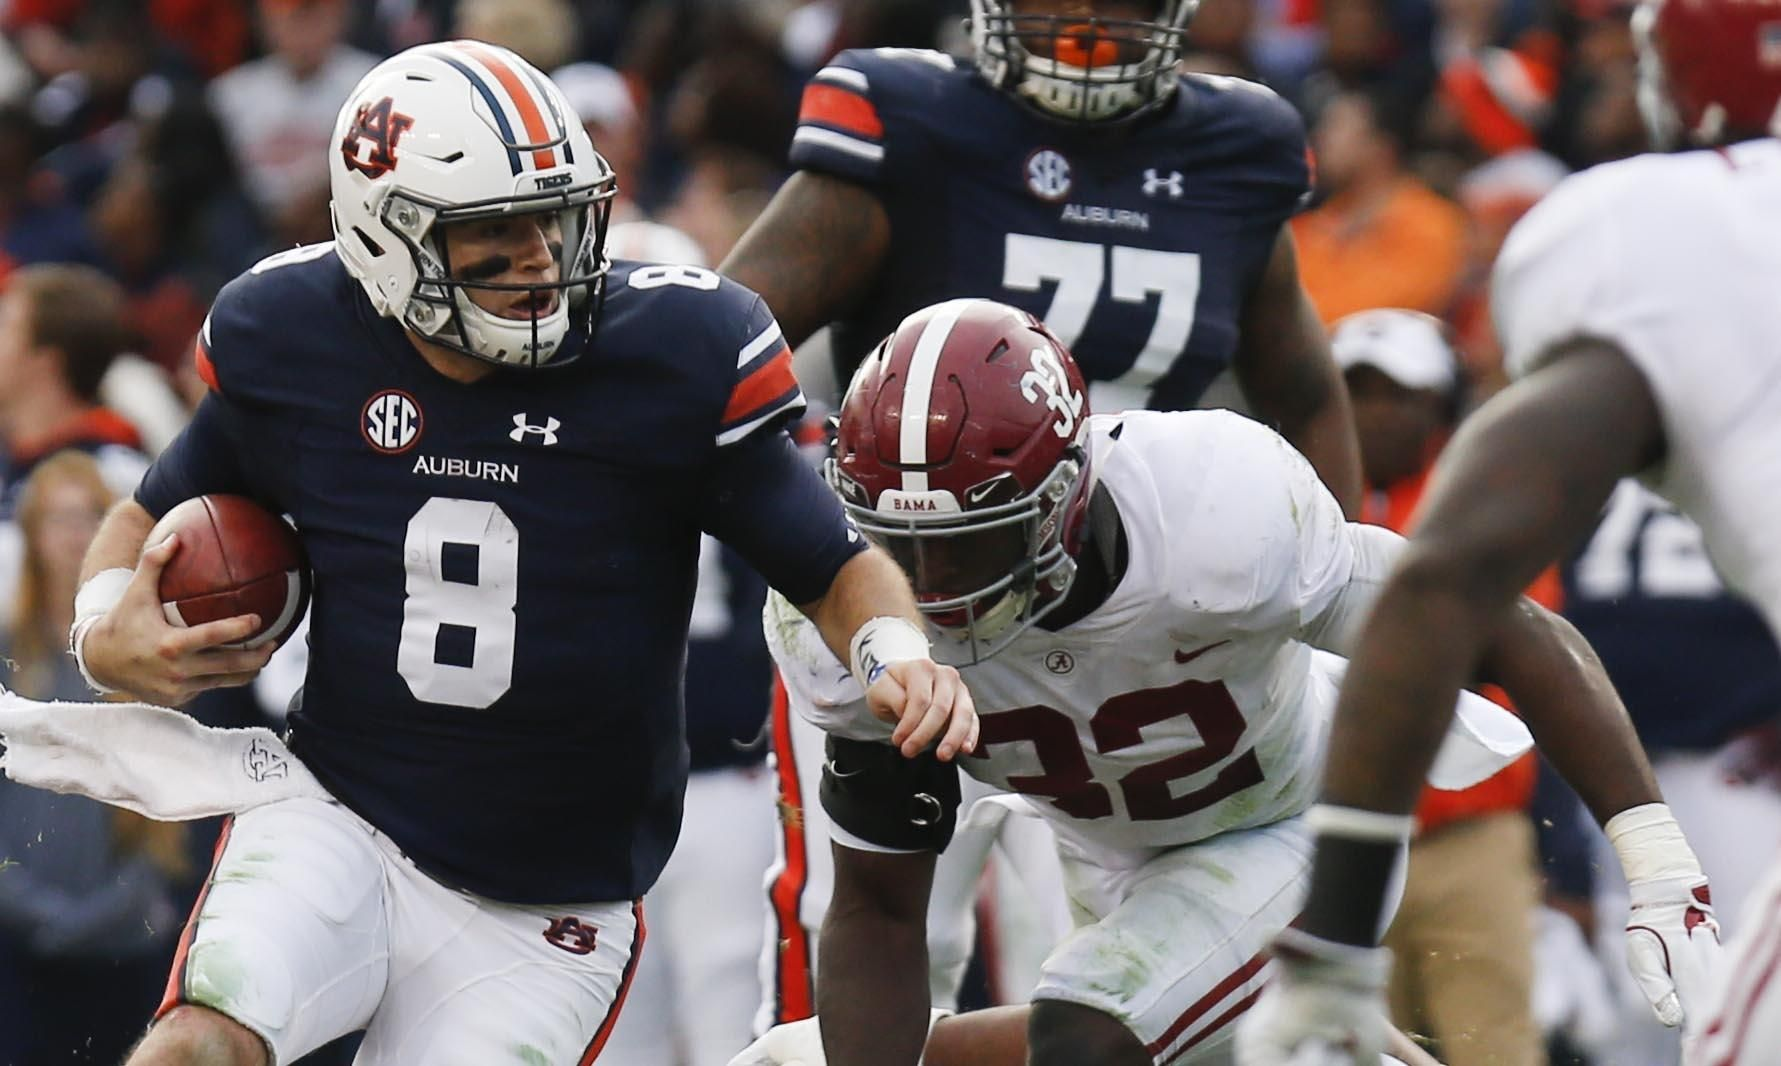 Auburn Quarterback Jarrett Stidham Runs The Ball As Alabama Linebacker Rashaan Evans Moves In Johnny Manziel Penn State Athletics College Football Championship